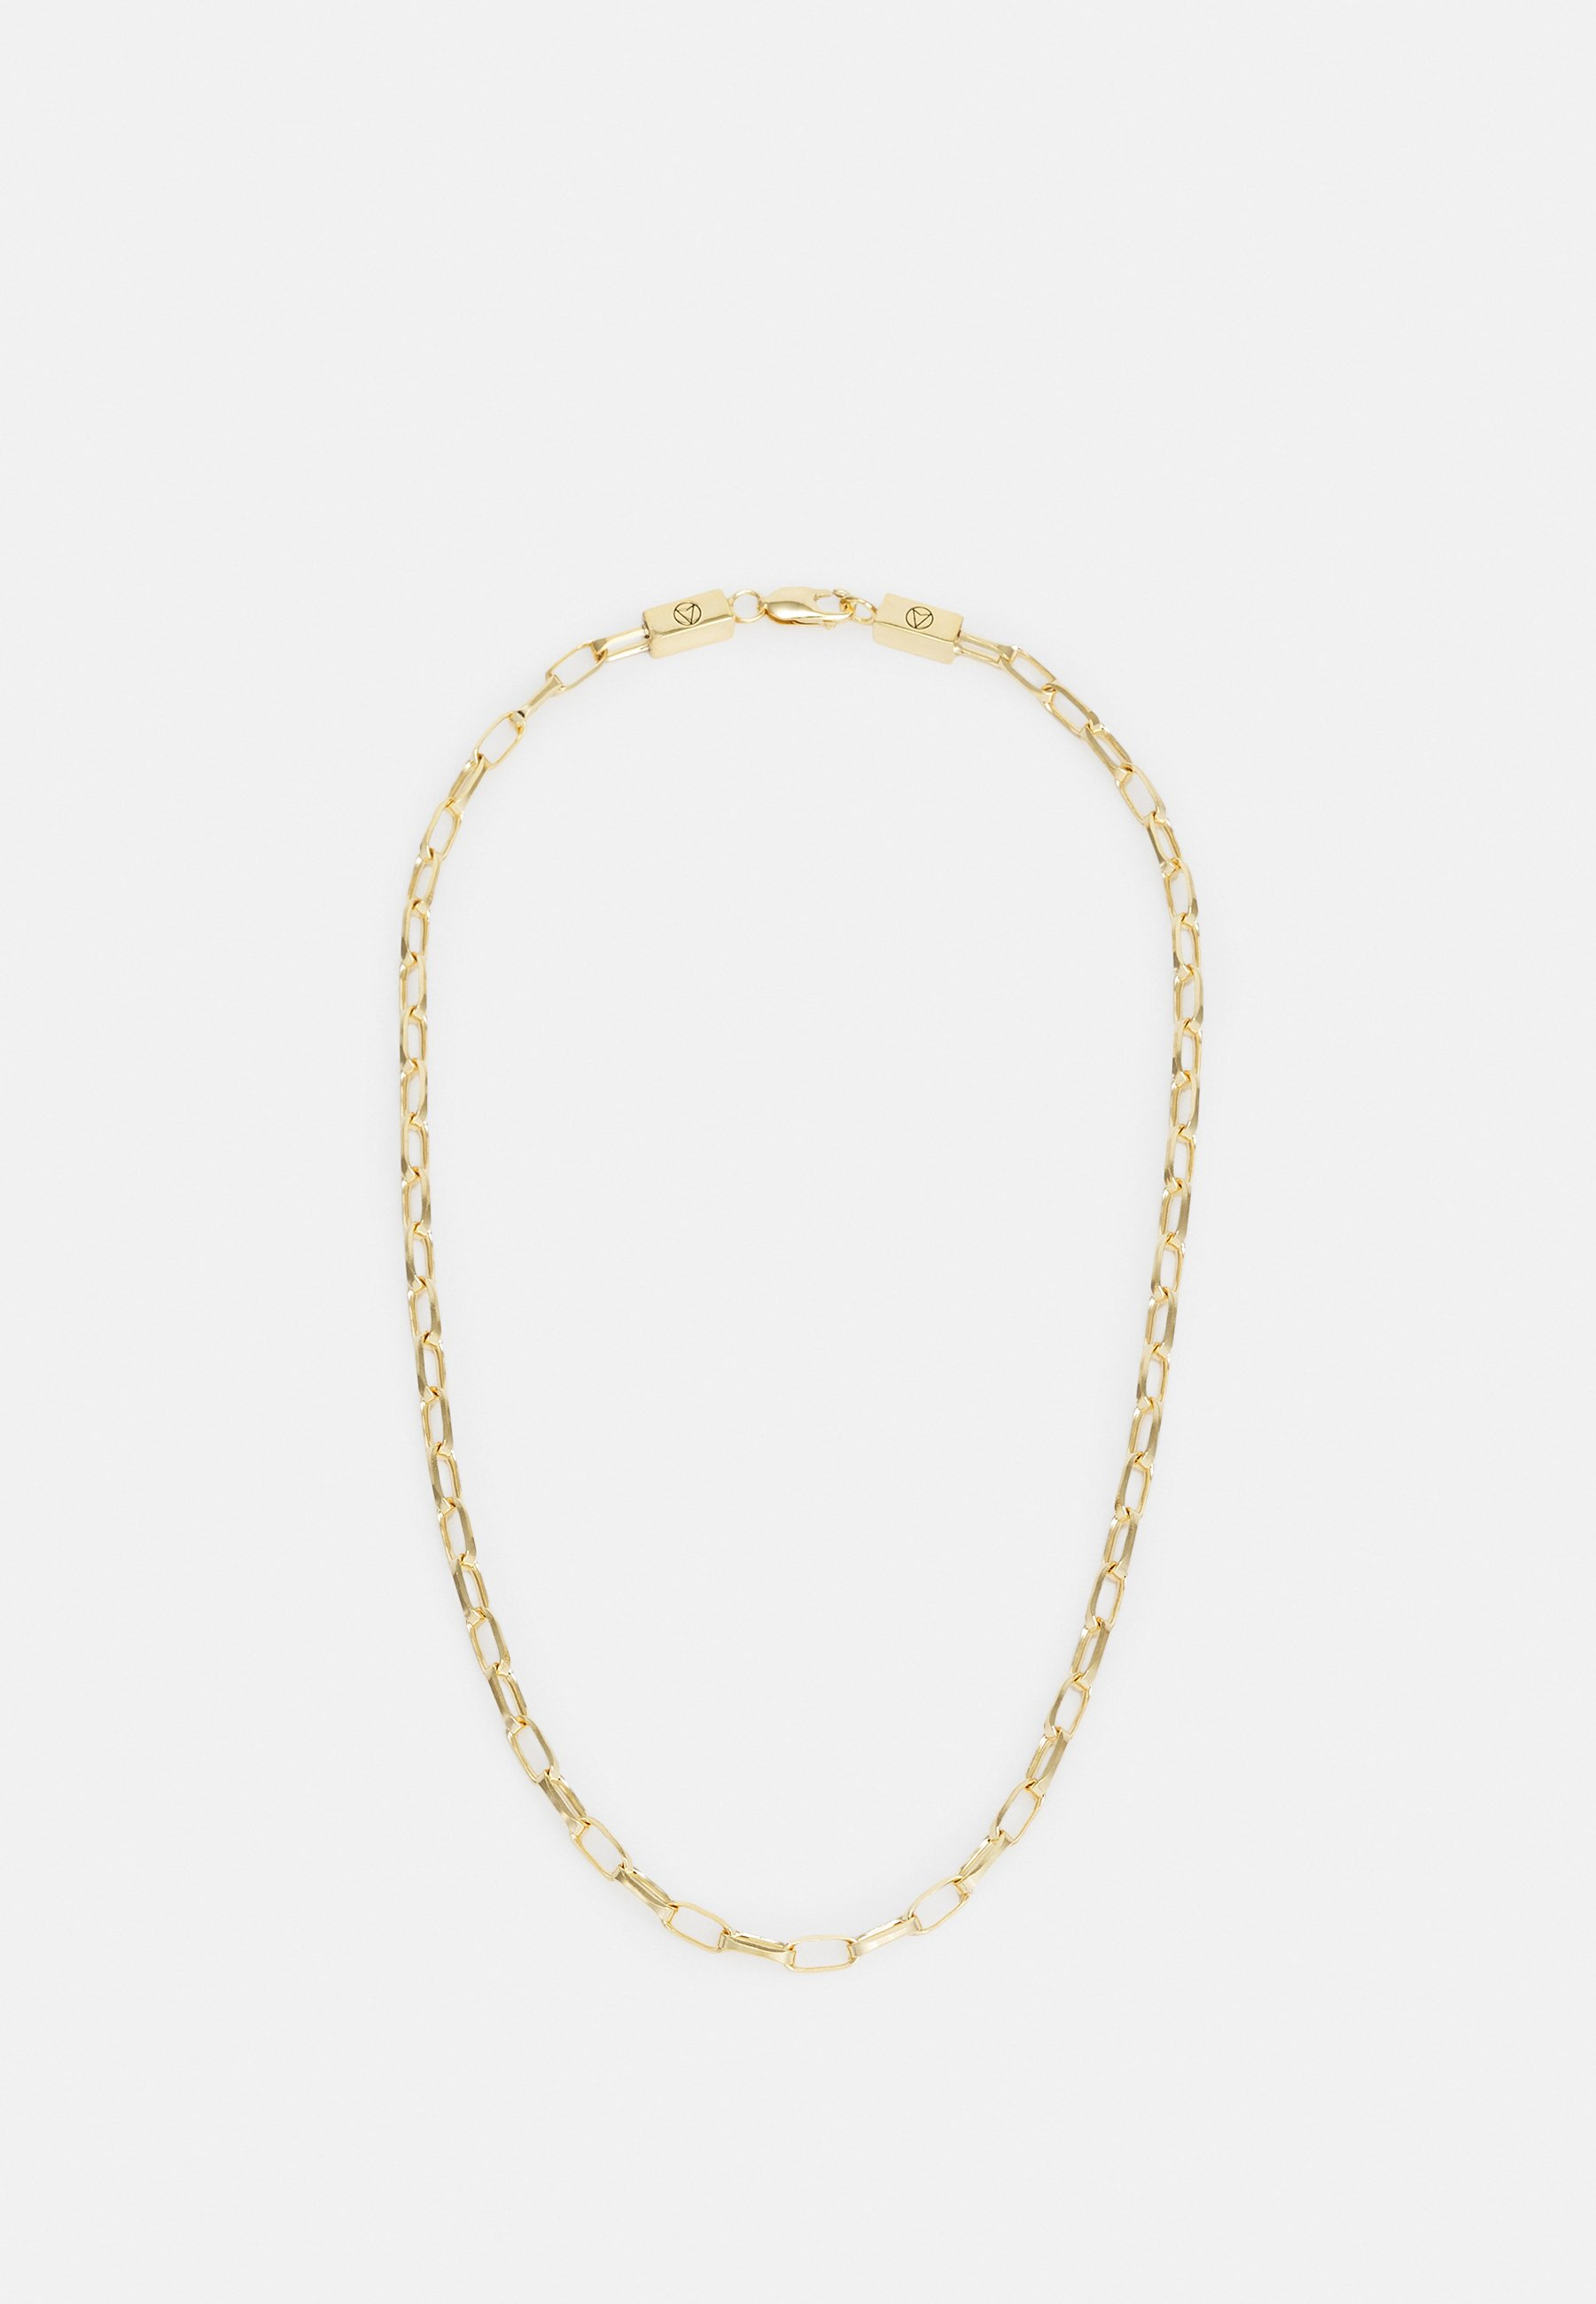 Homme LARGE CABLE CHAIN LINK NECKLACE UNISEX - Collier